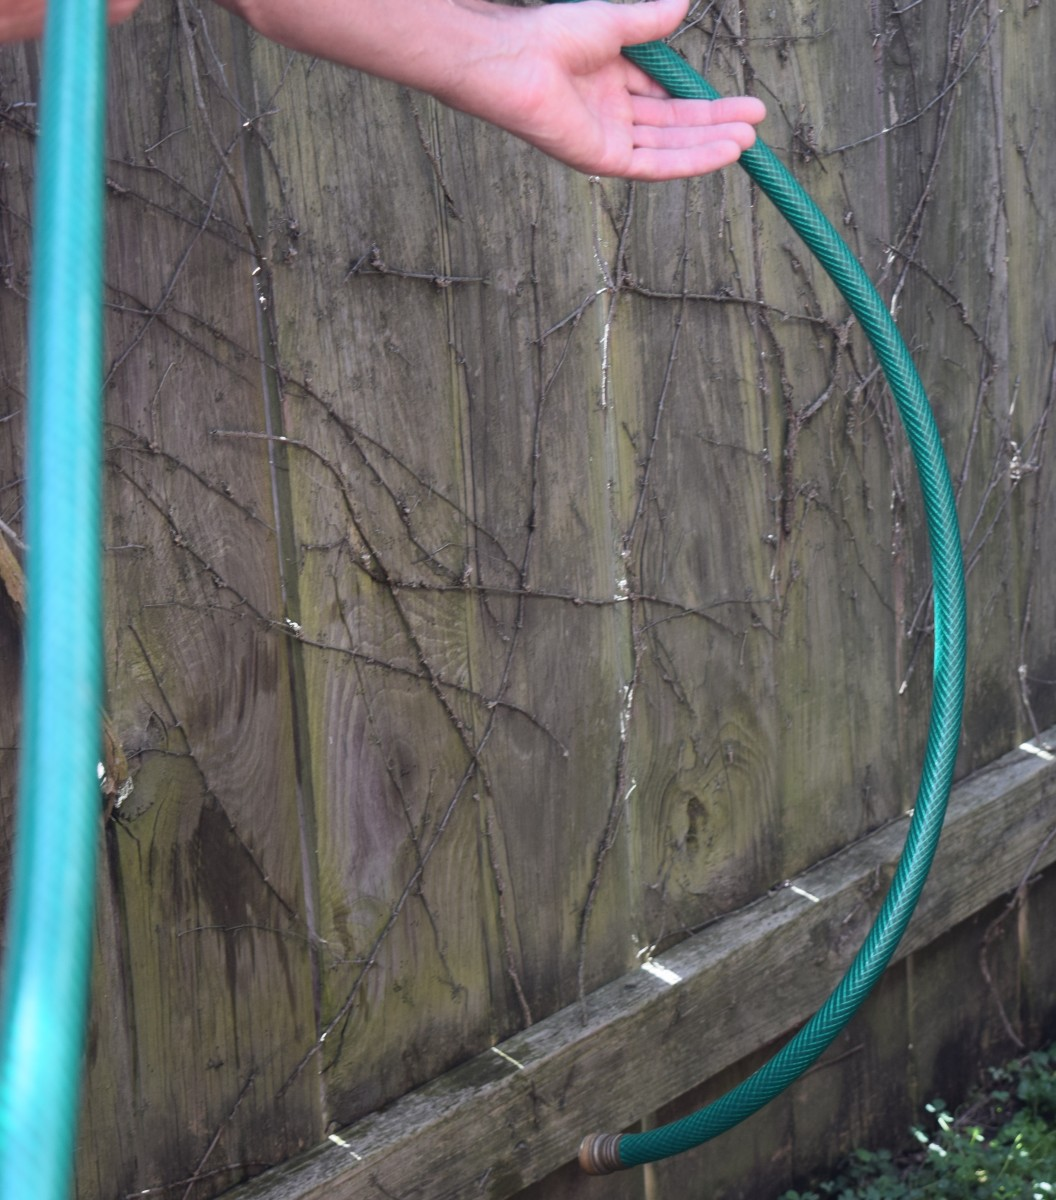 Create a water slide with the hose to empty it.